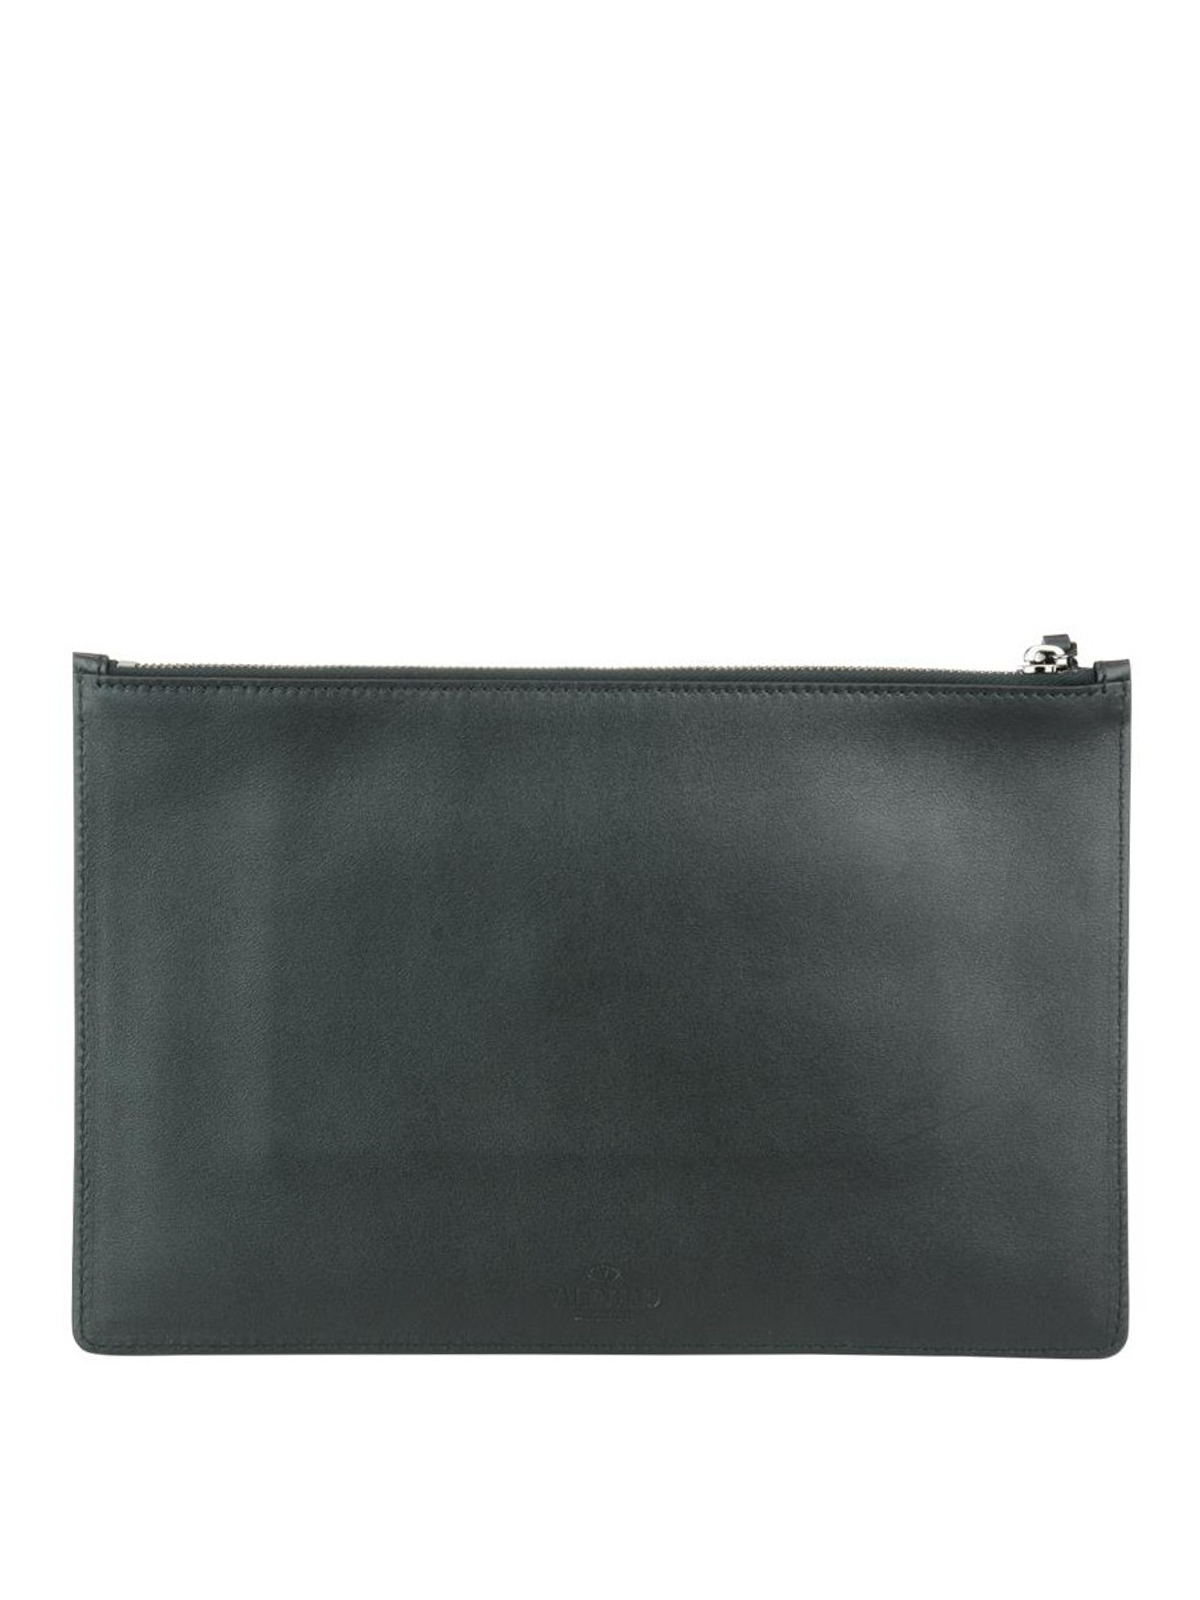 Valentino Camu leather and fabric clutch